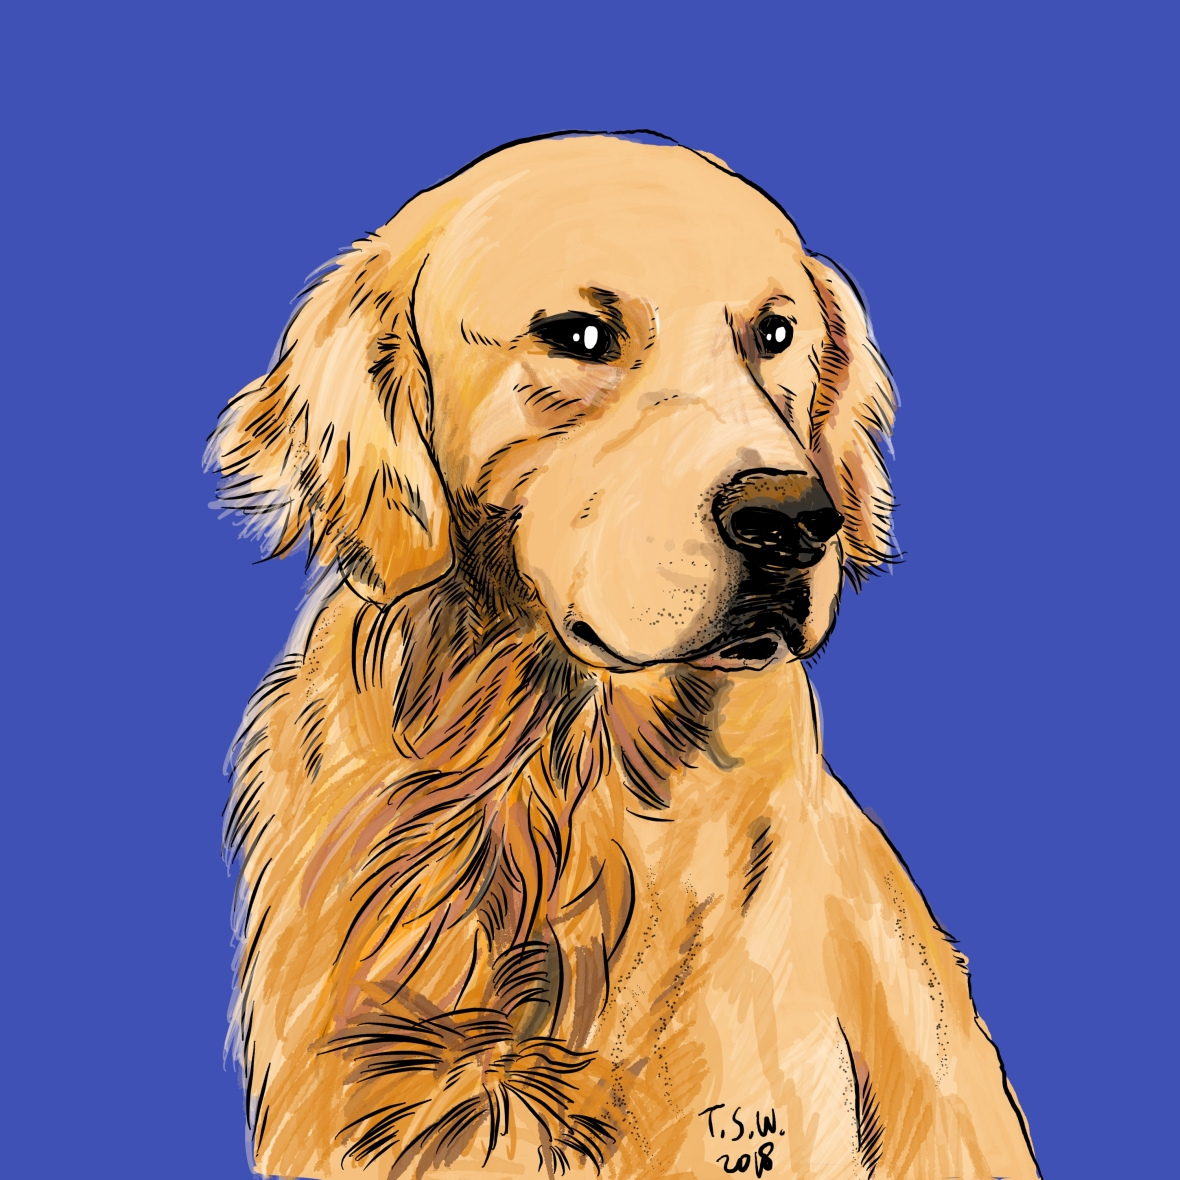 Golden retriever illustration